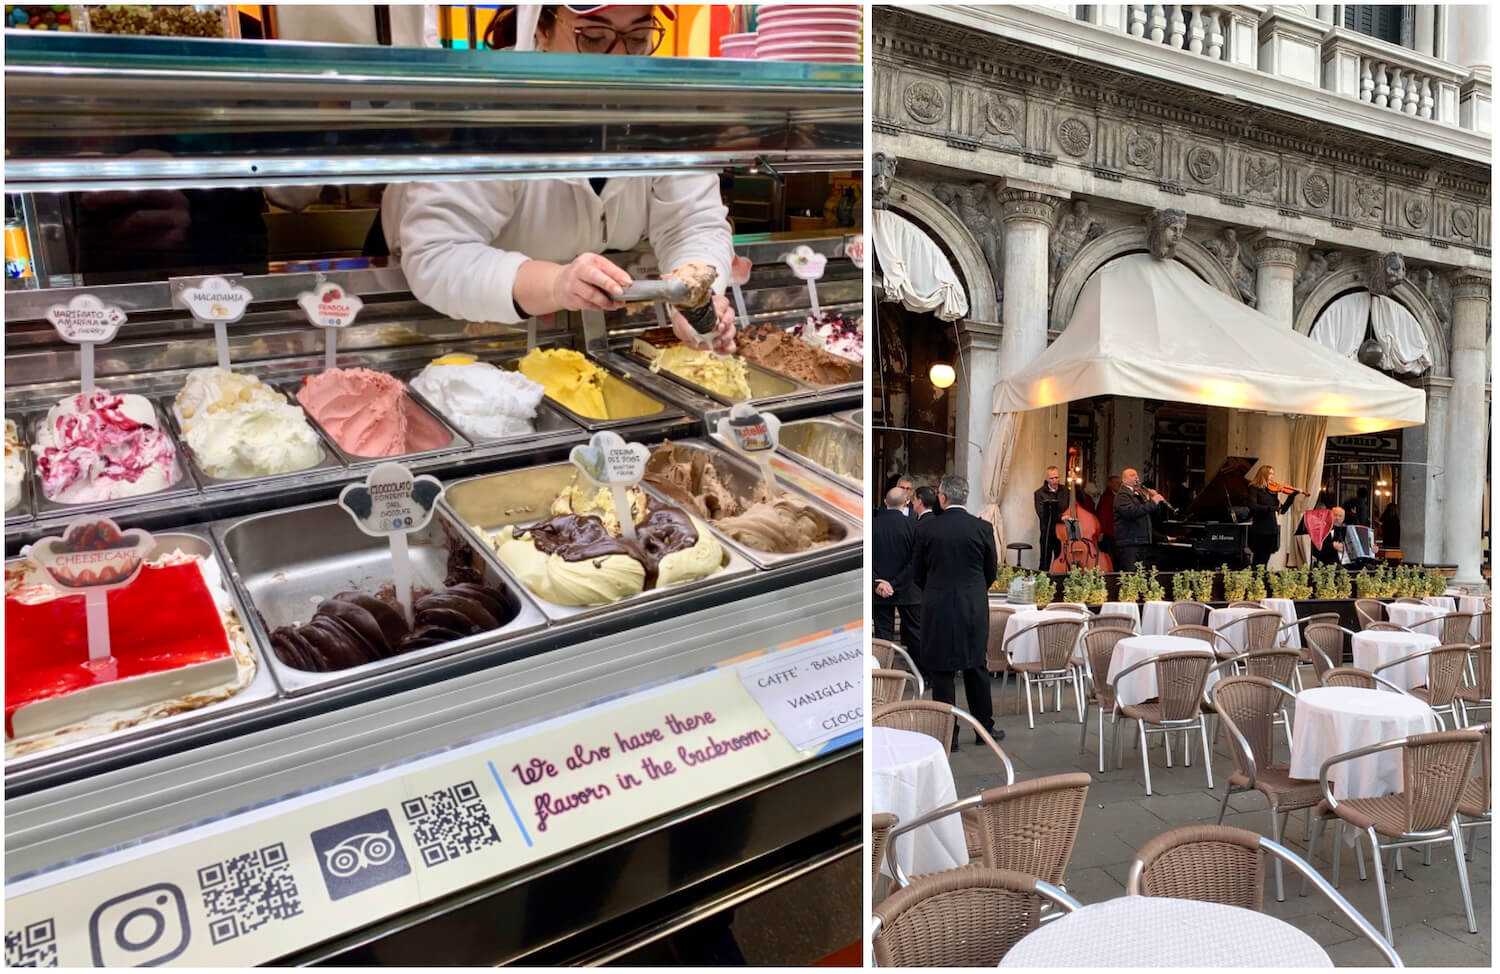 Gelato Fantasy and Caffe Florian in Venice, Italy - Budget